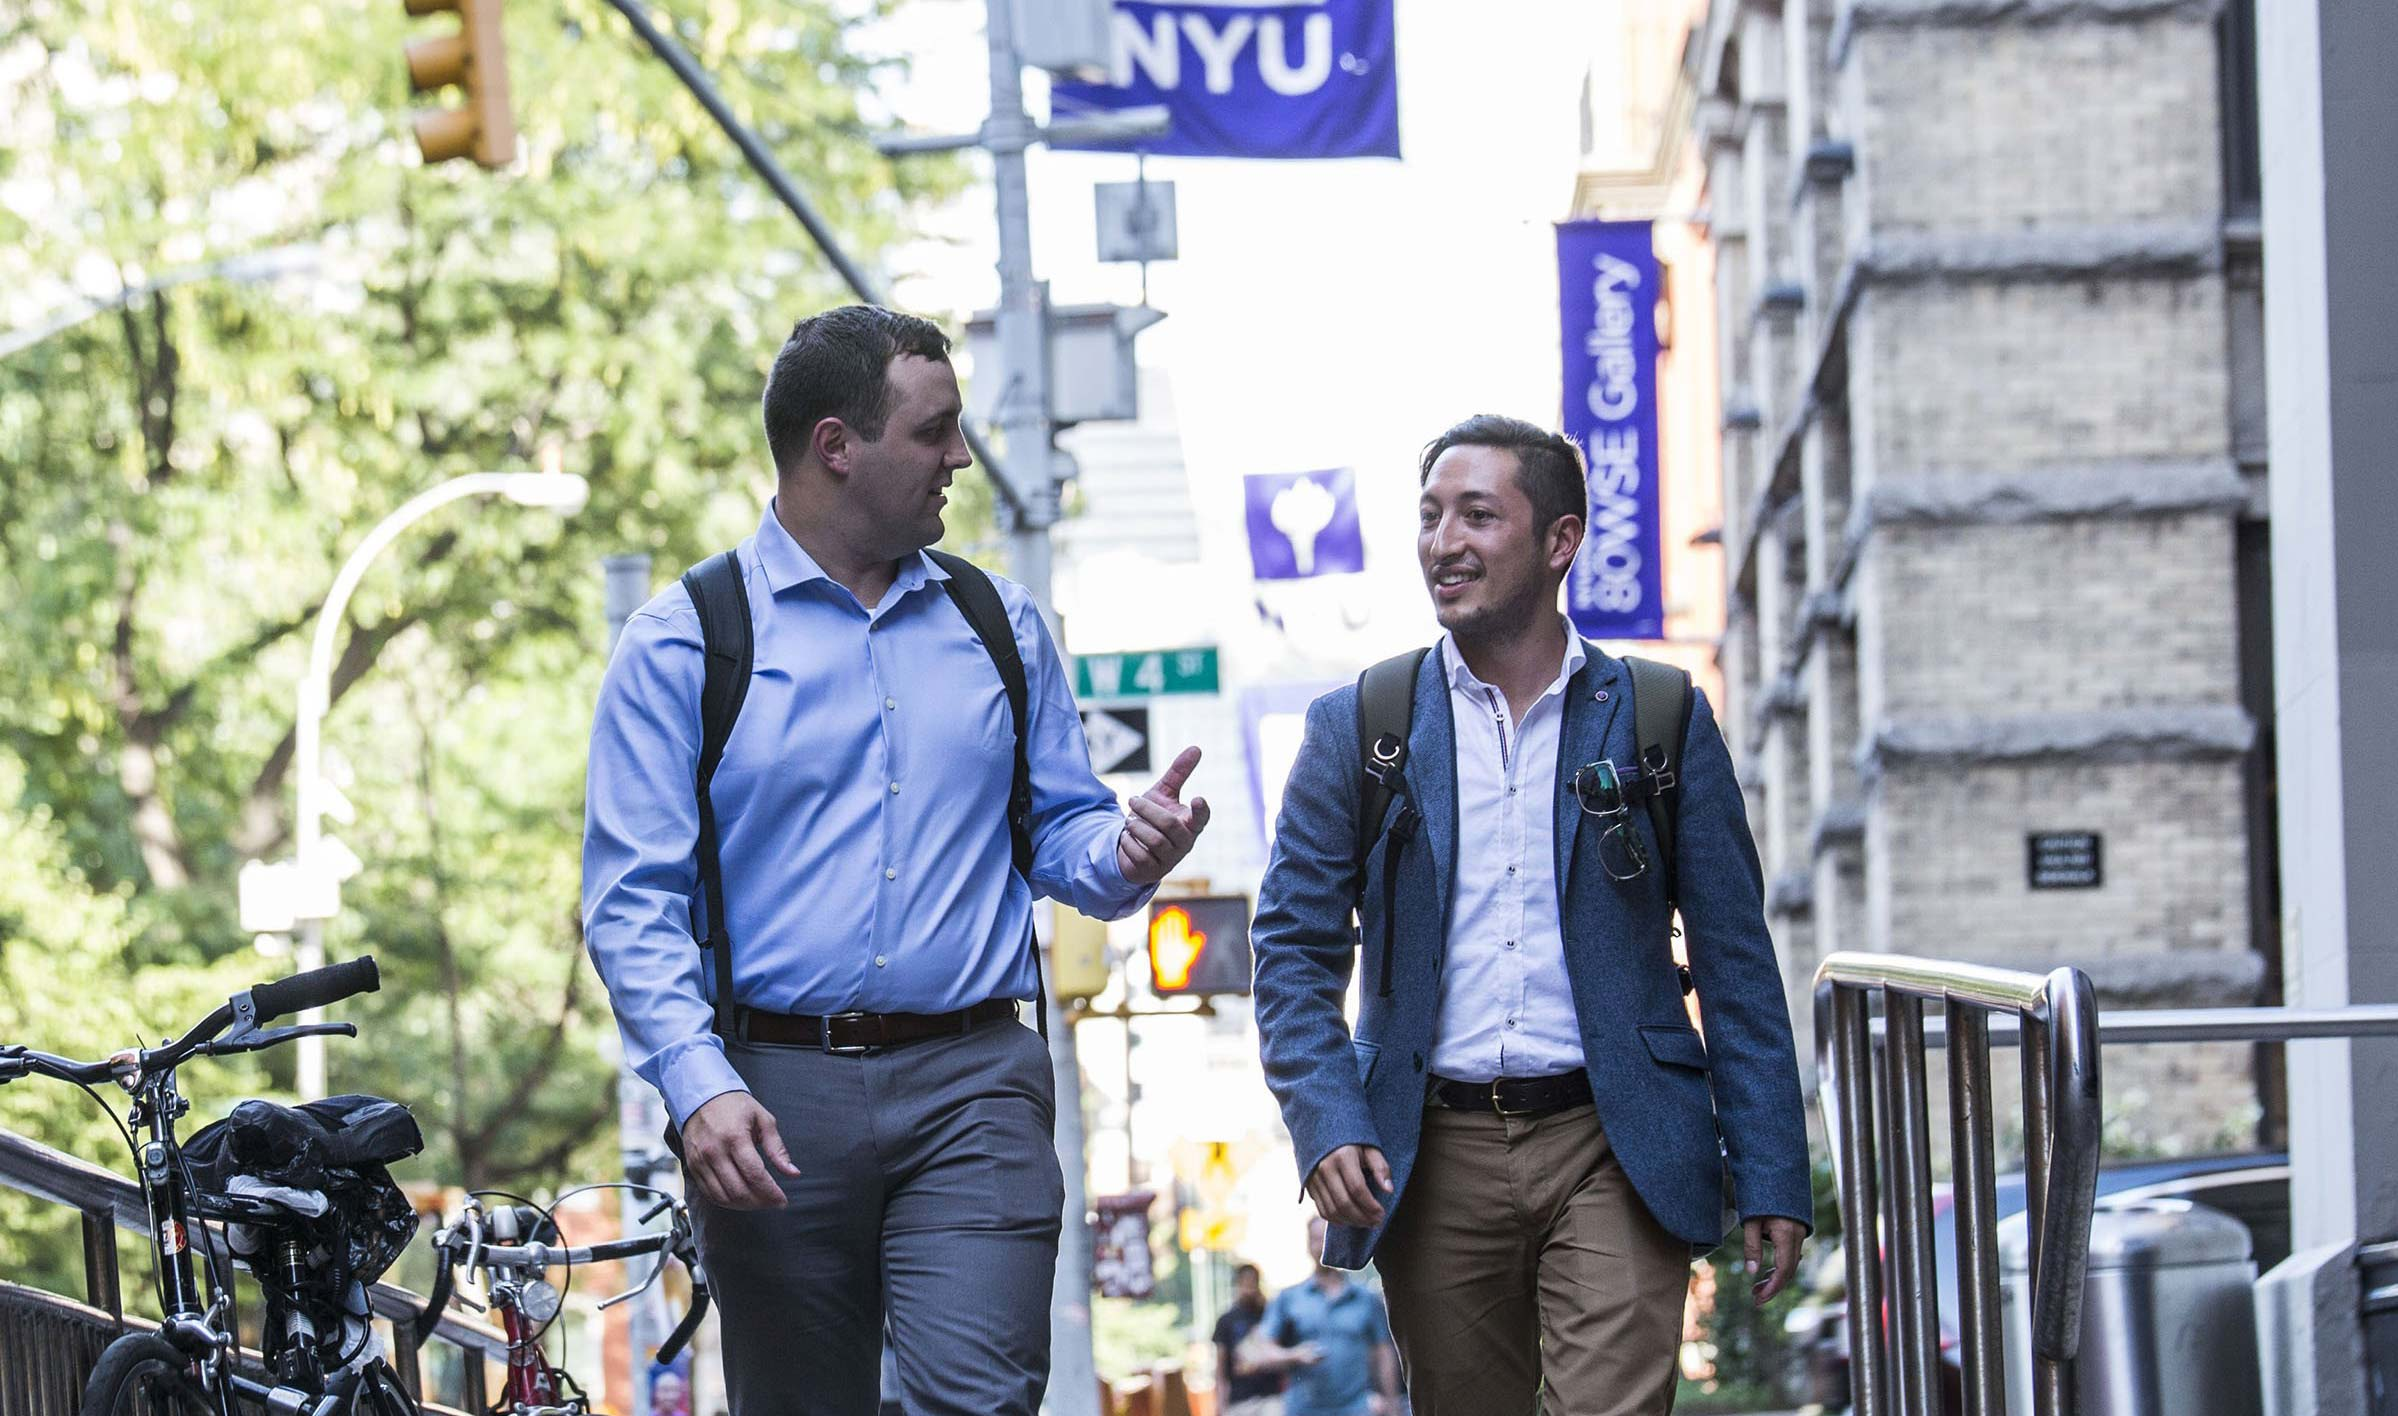 NYU Stern students walking on campus